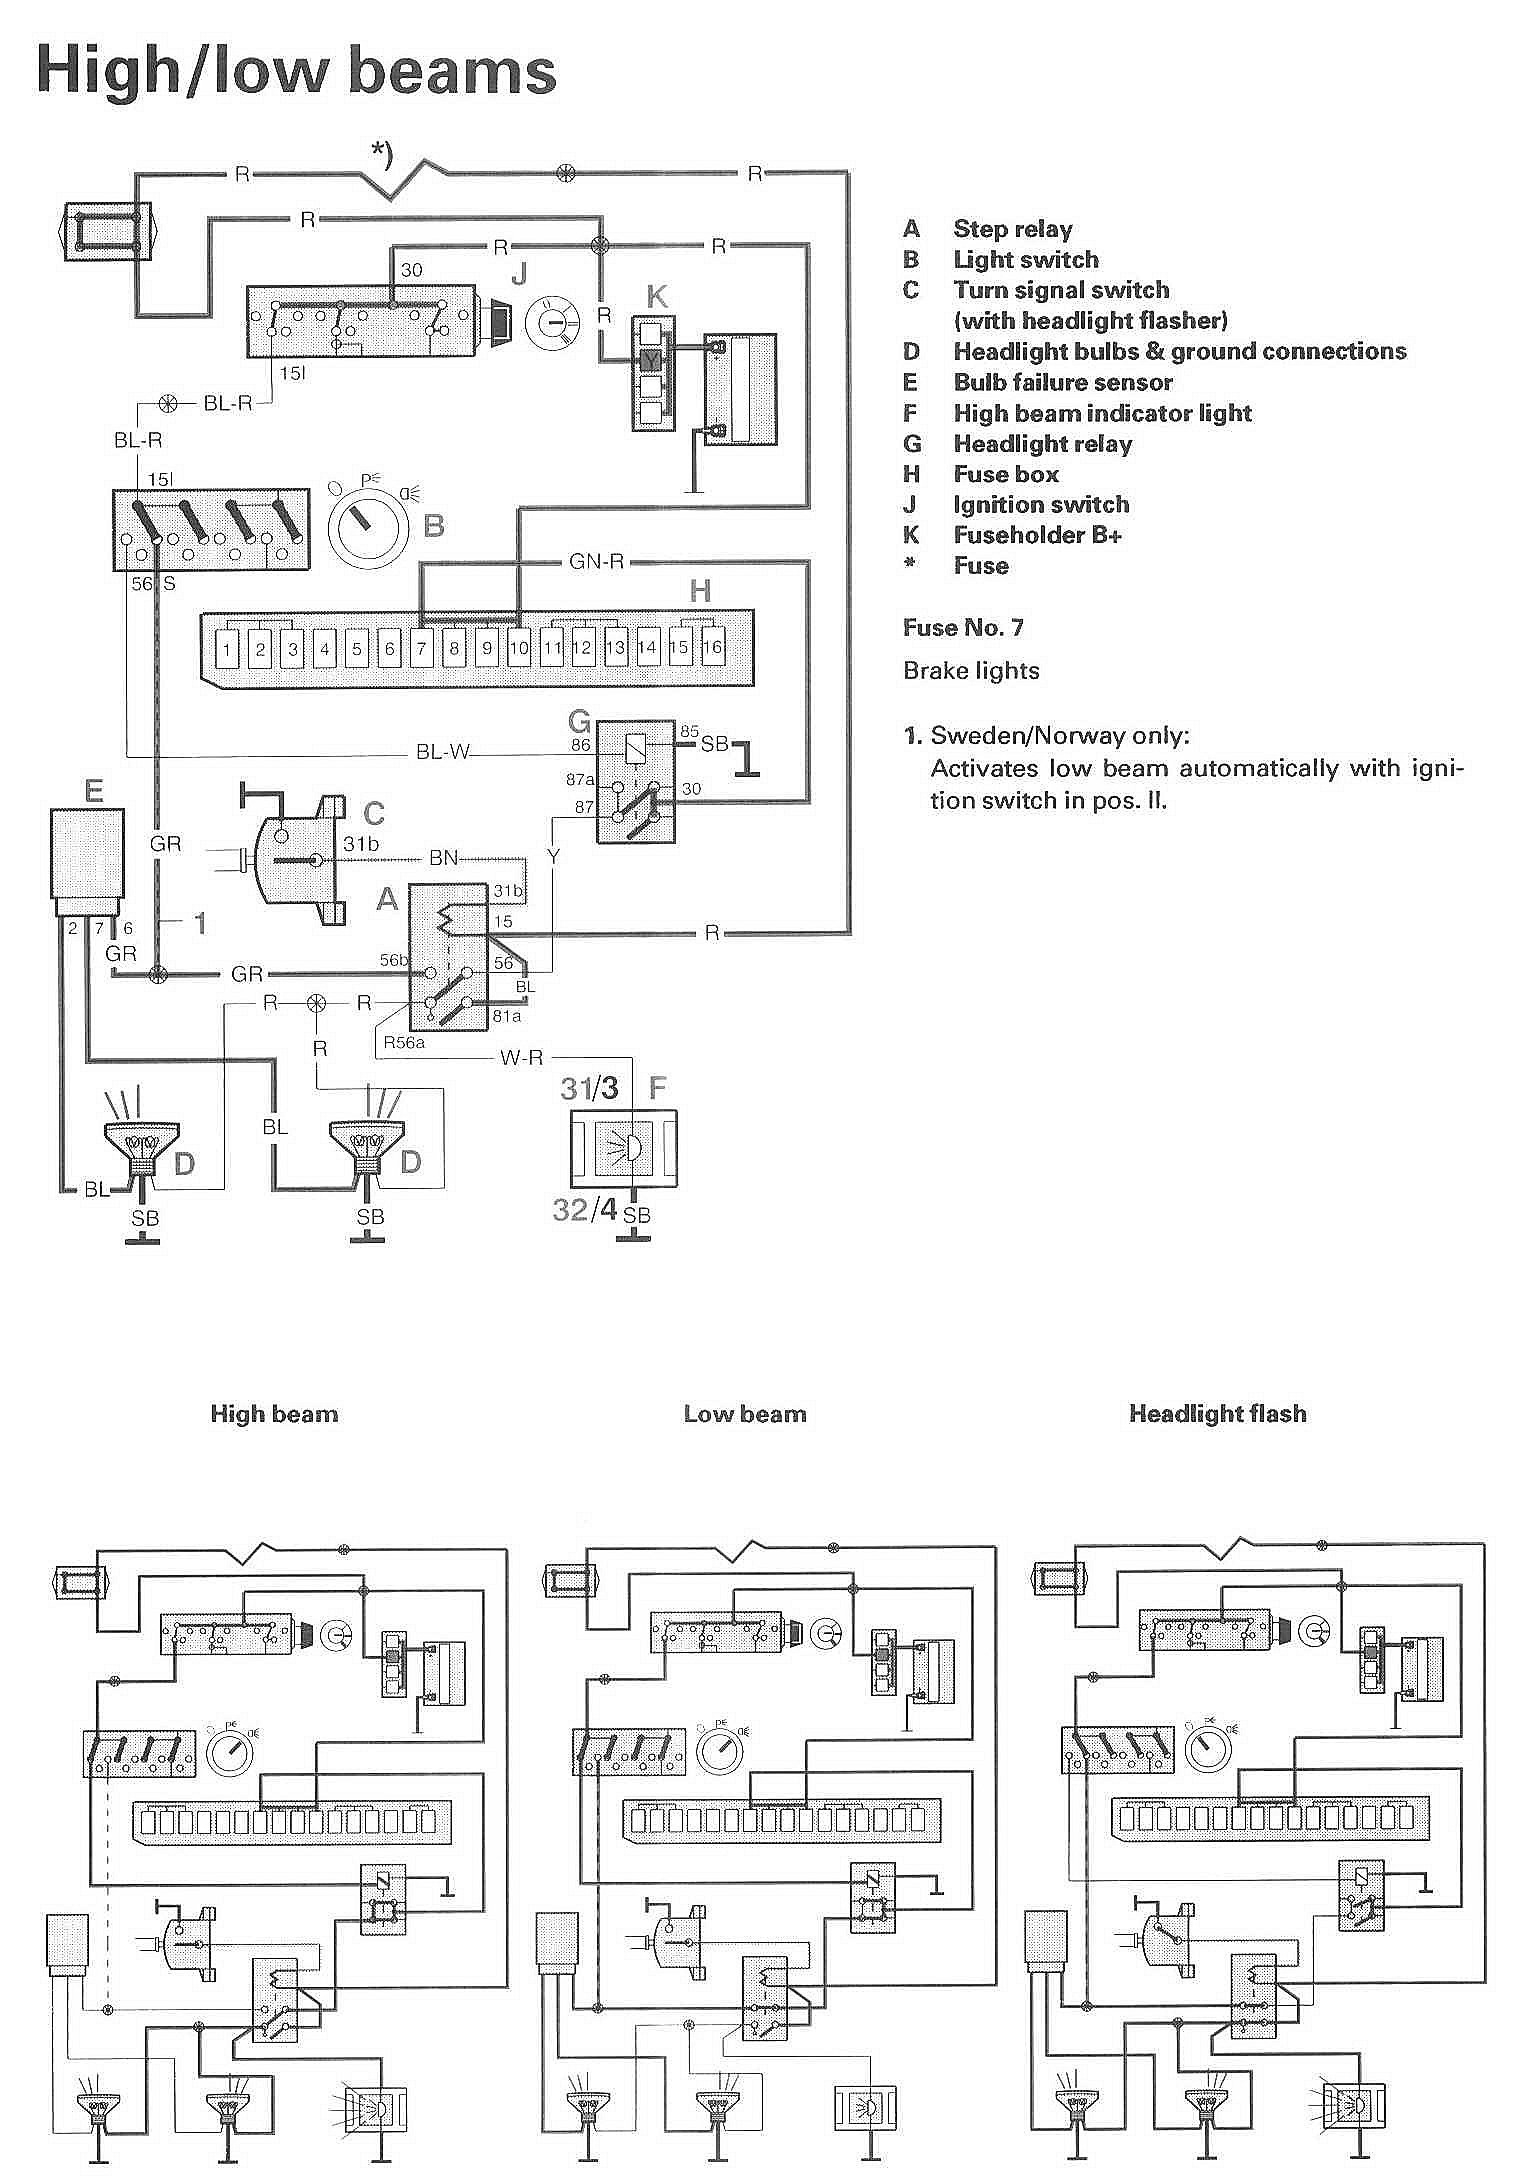 Gm Switch Wiring | Wiring Library - Gm Headlight Switch Wiring Diagram